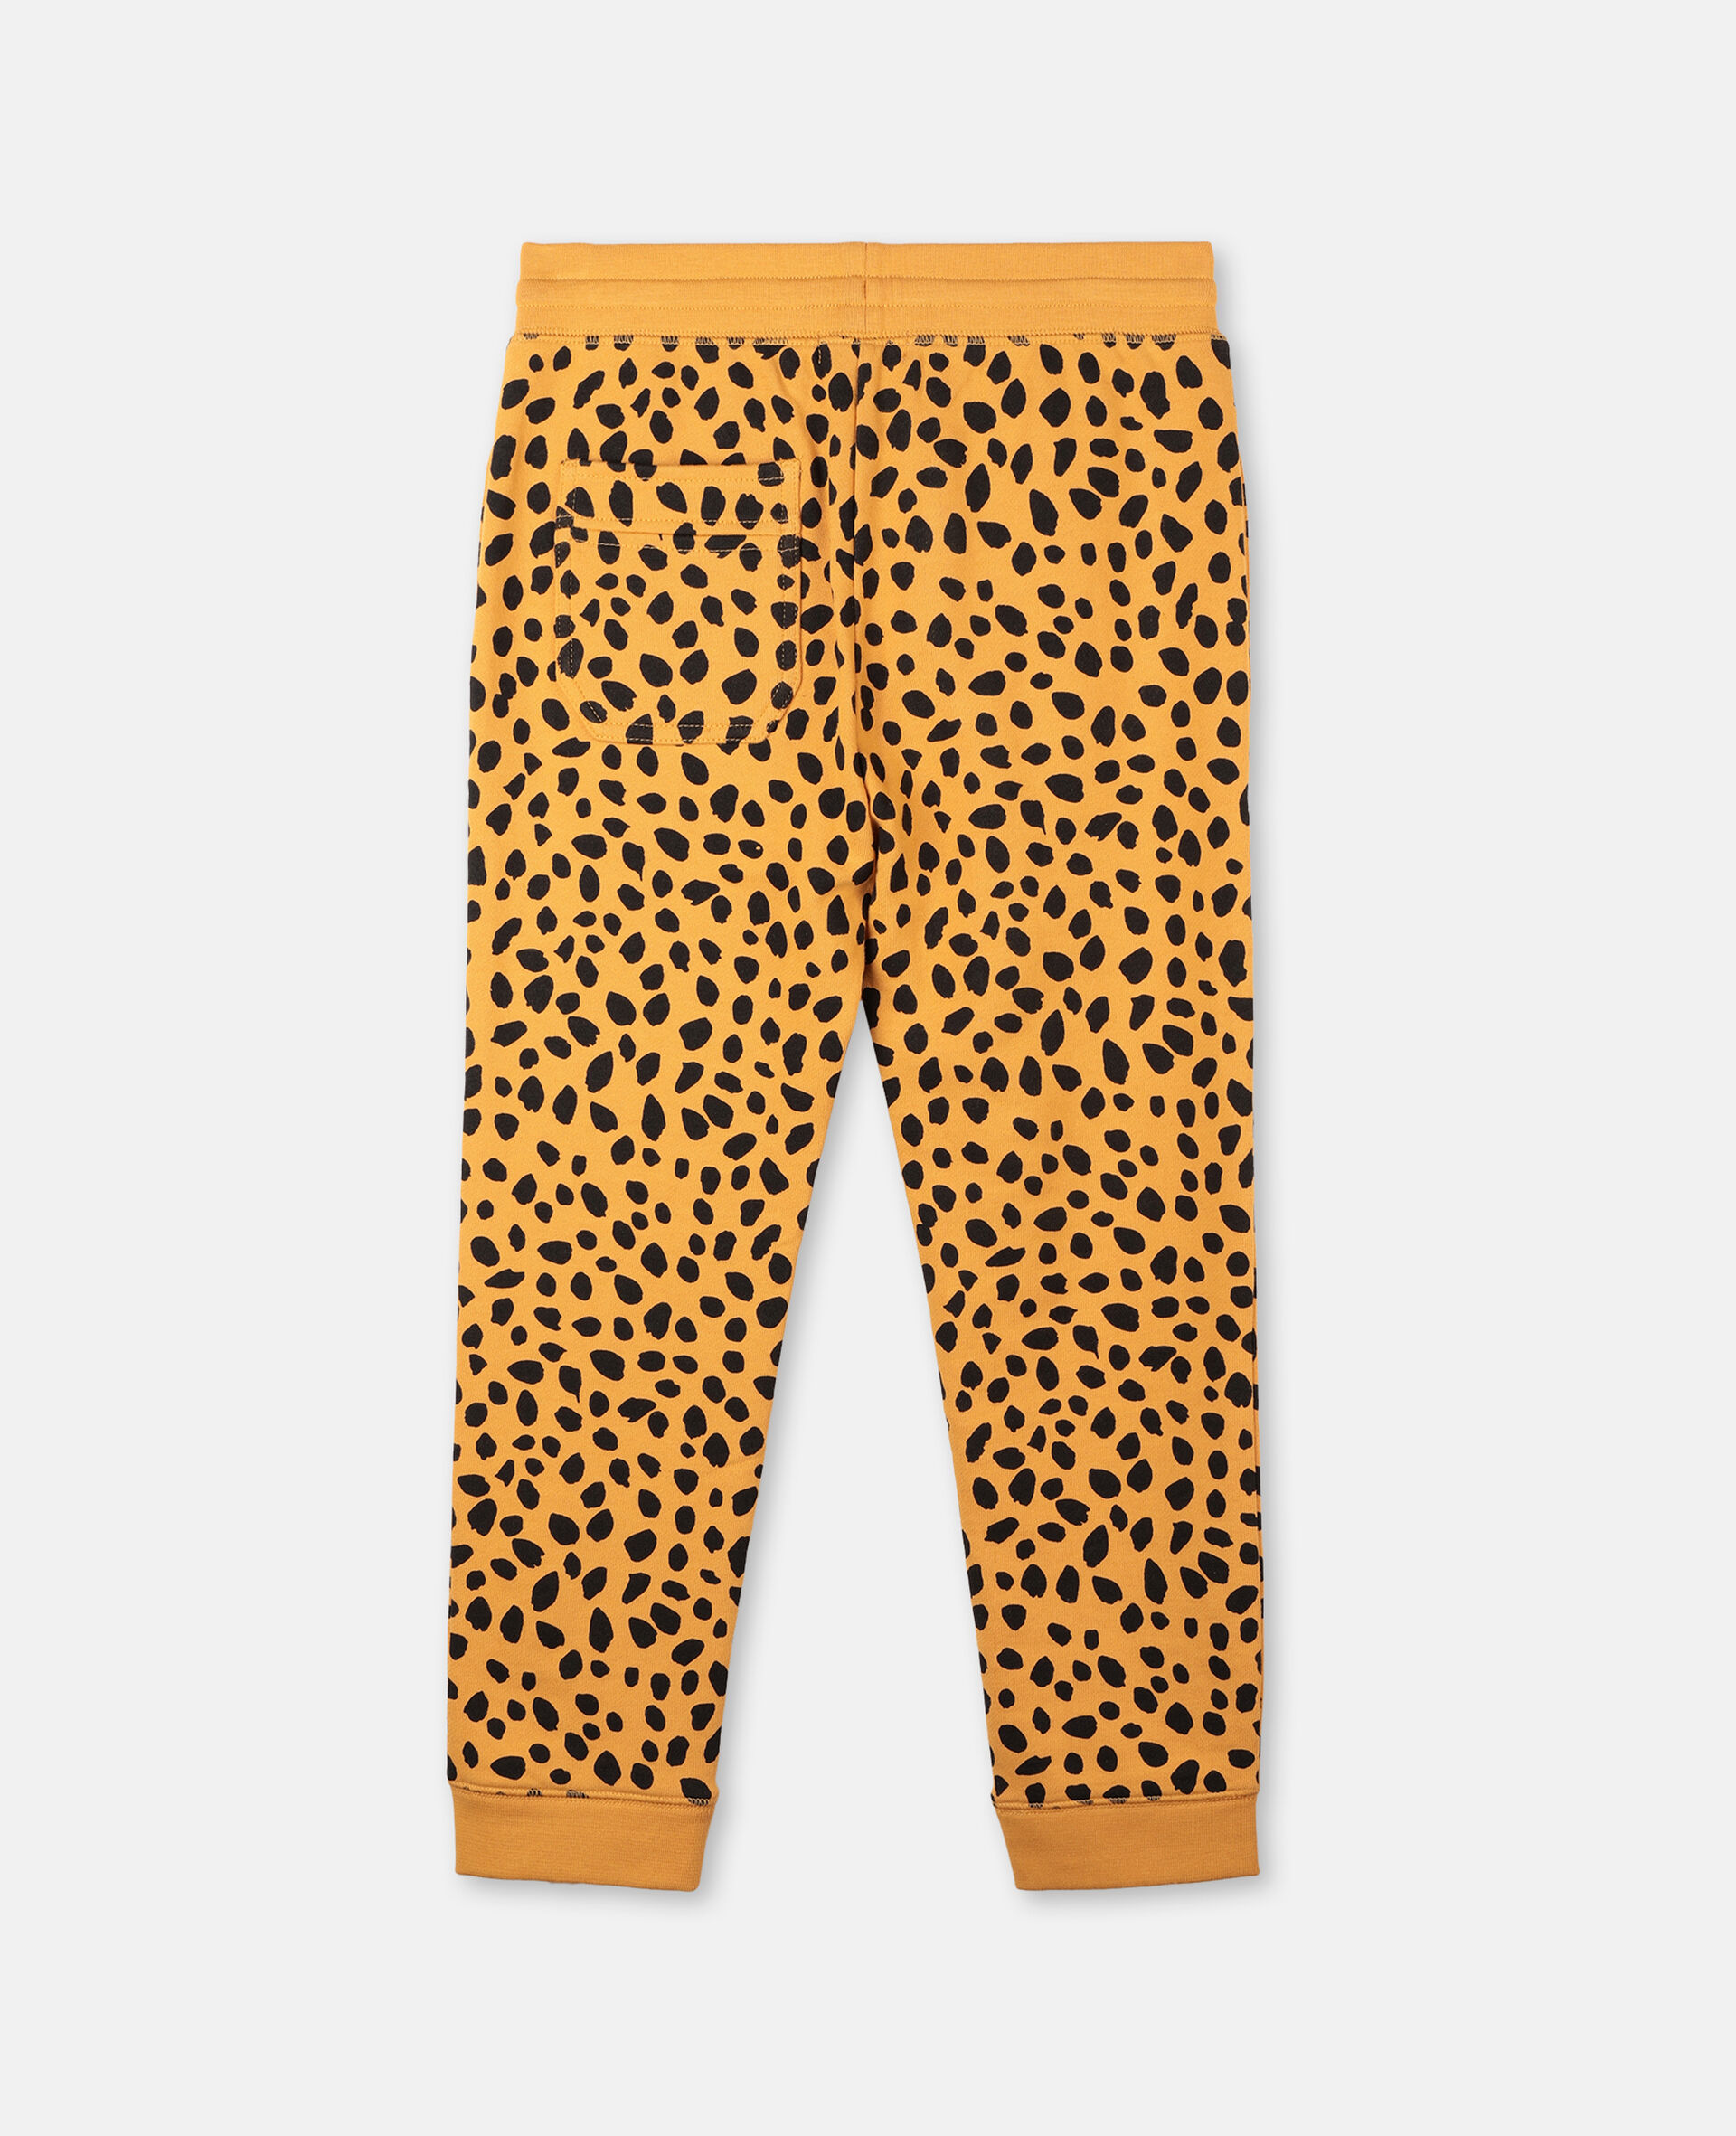 Cheetah Dots 棉质运动裤  -Multicolored-large image number 3